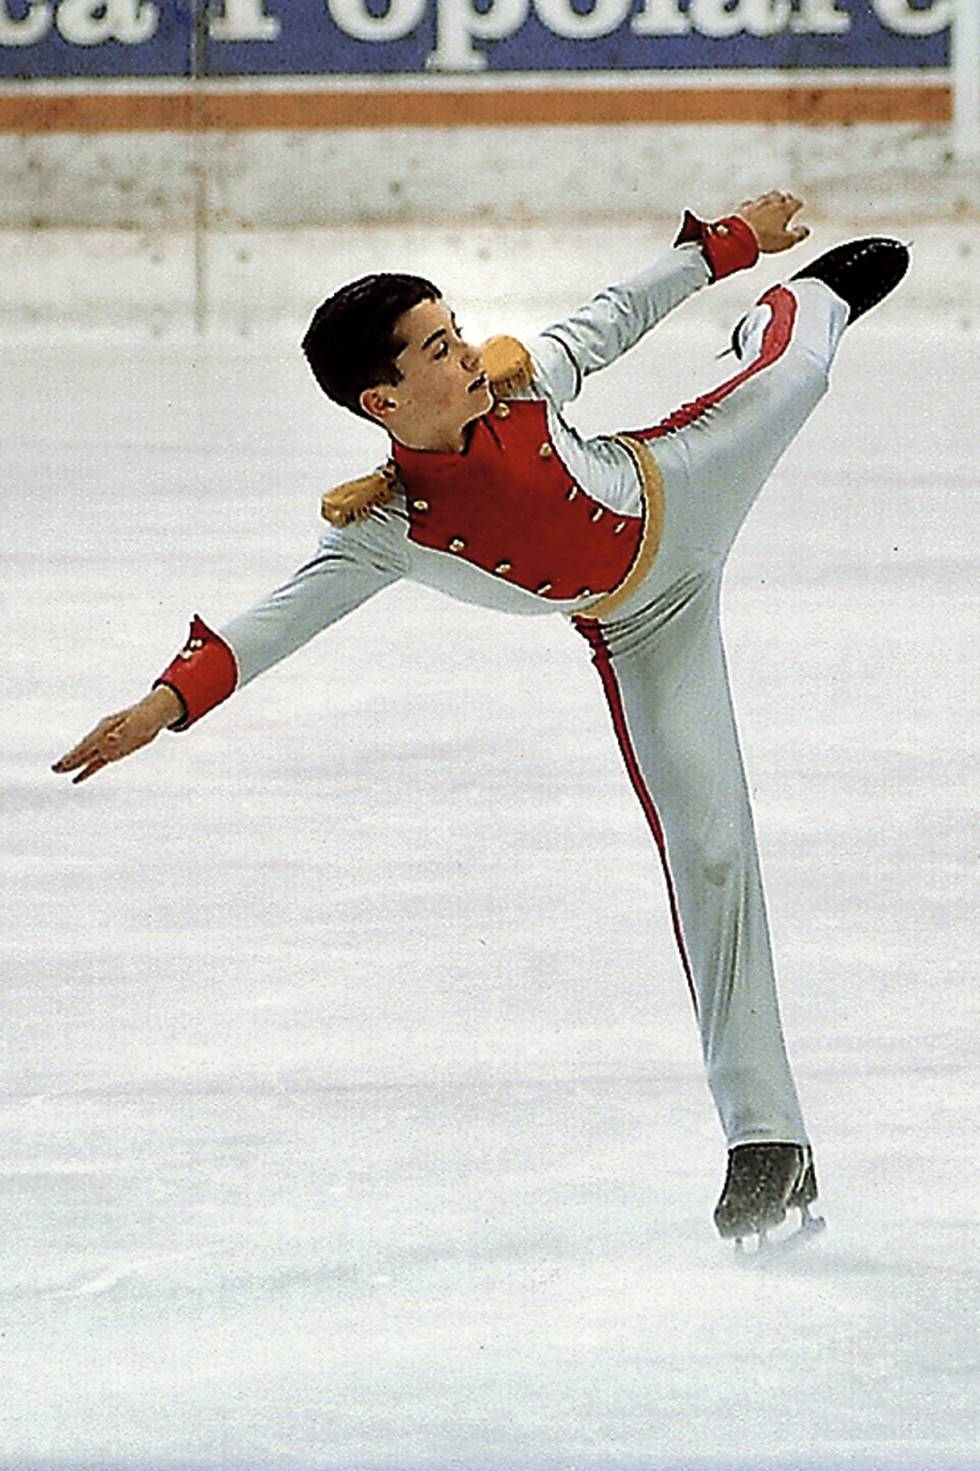 Javier as a 13-year-old on ice.